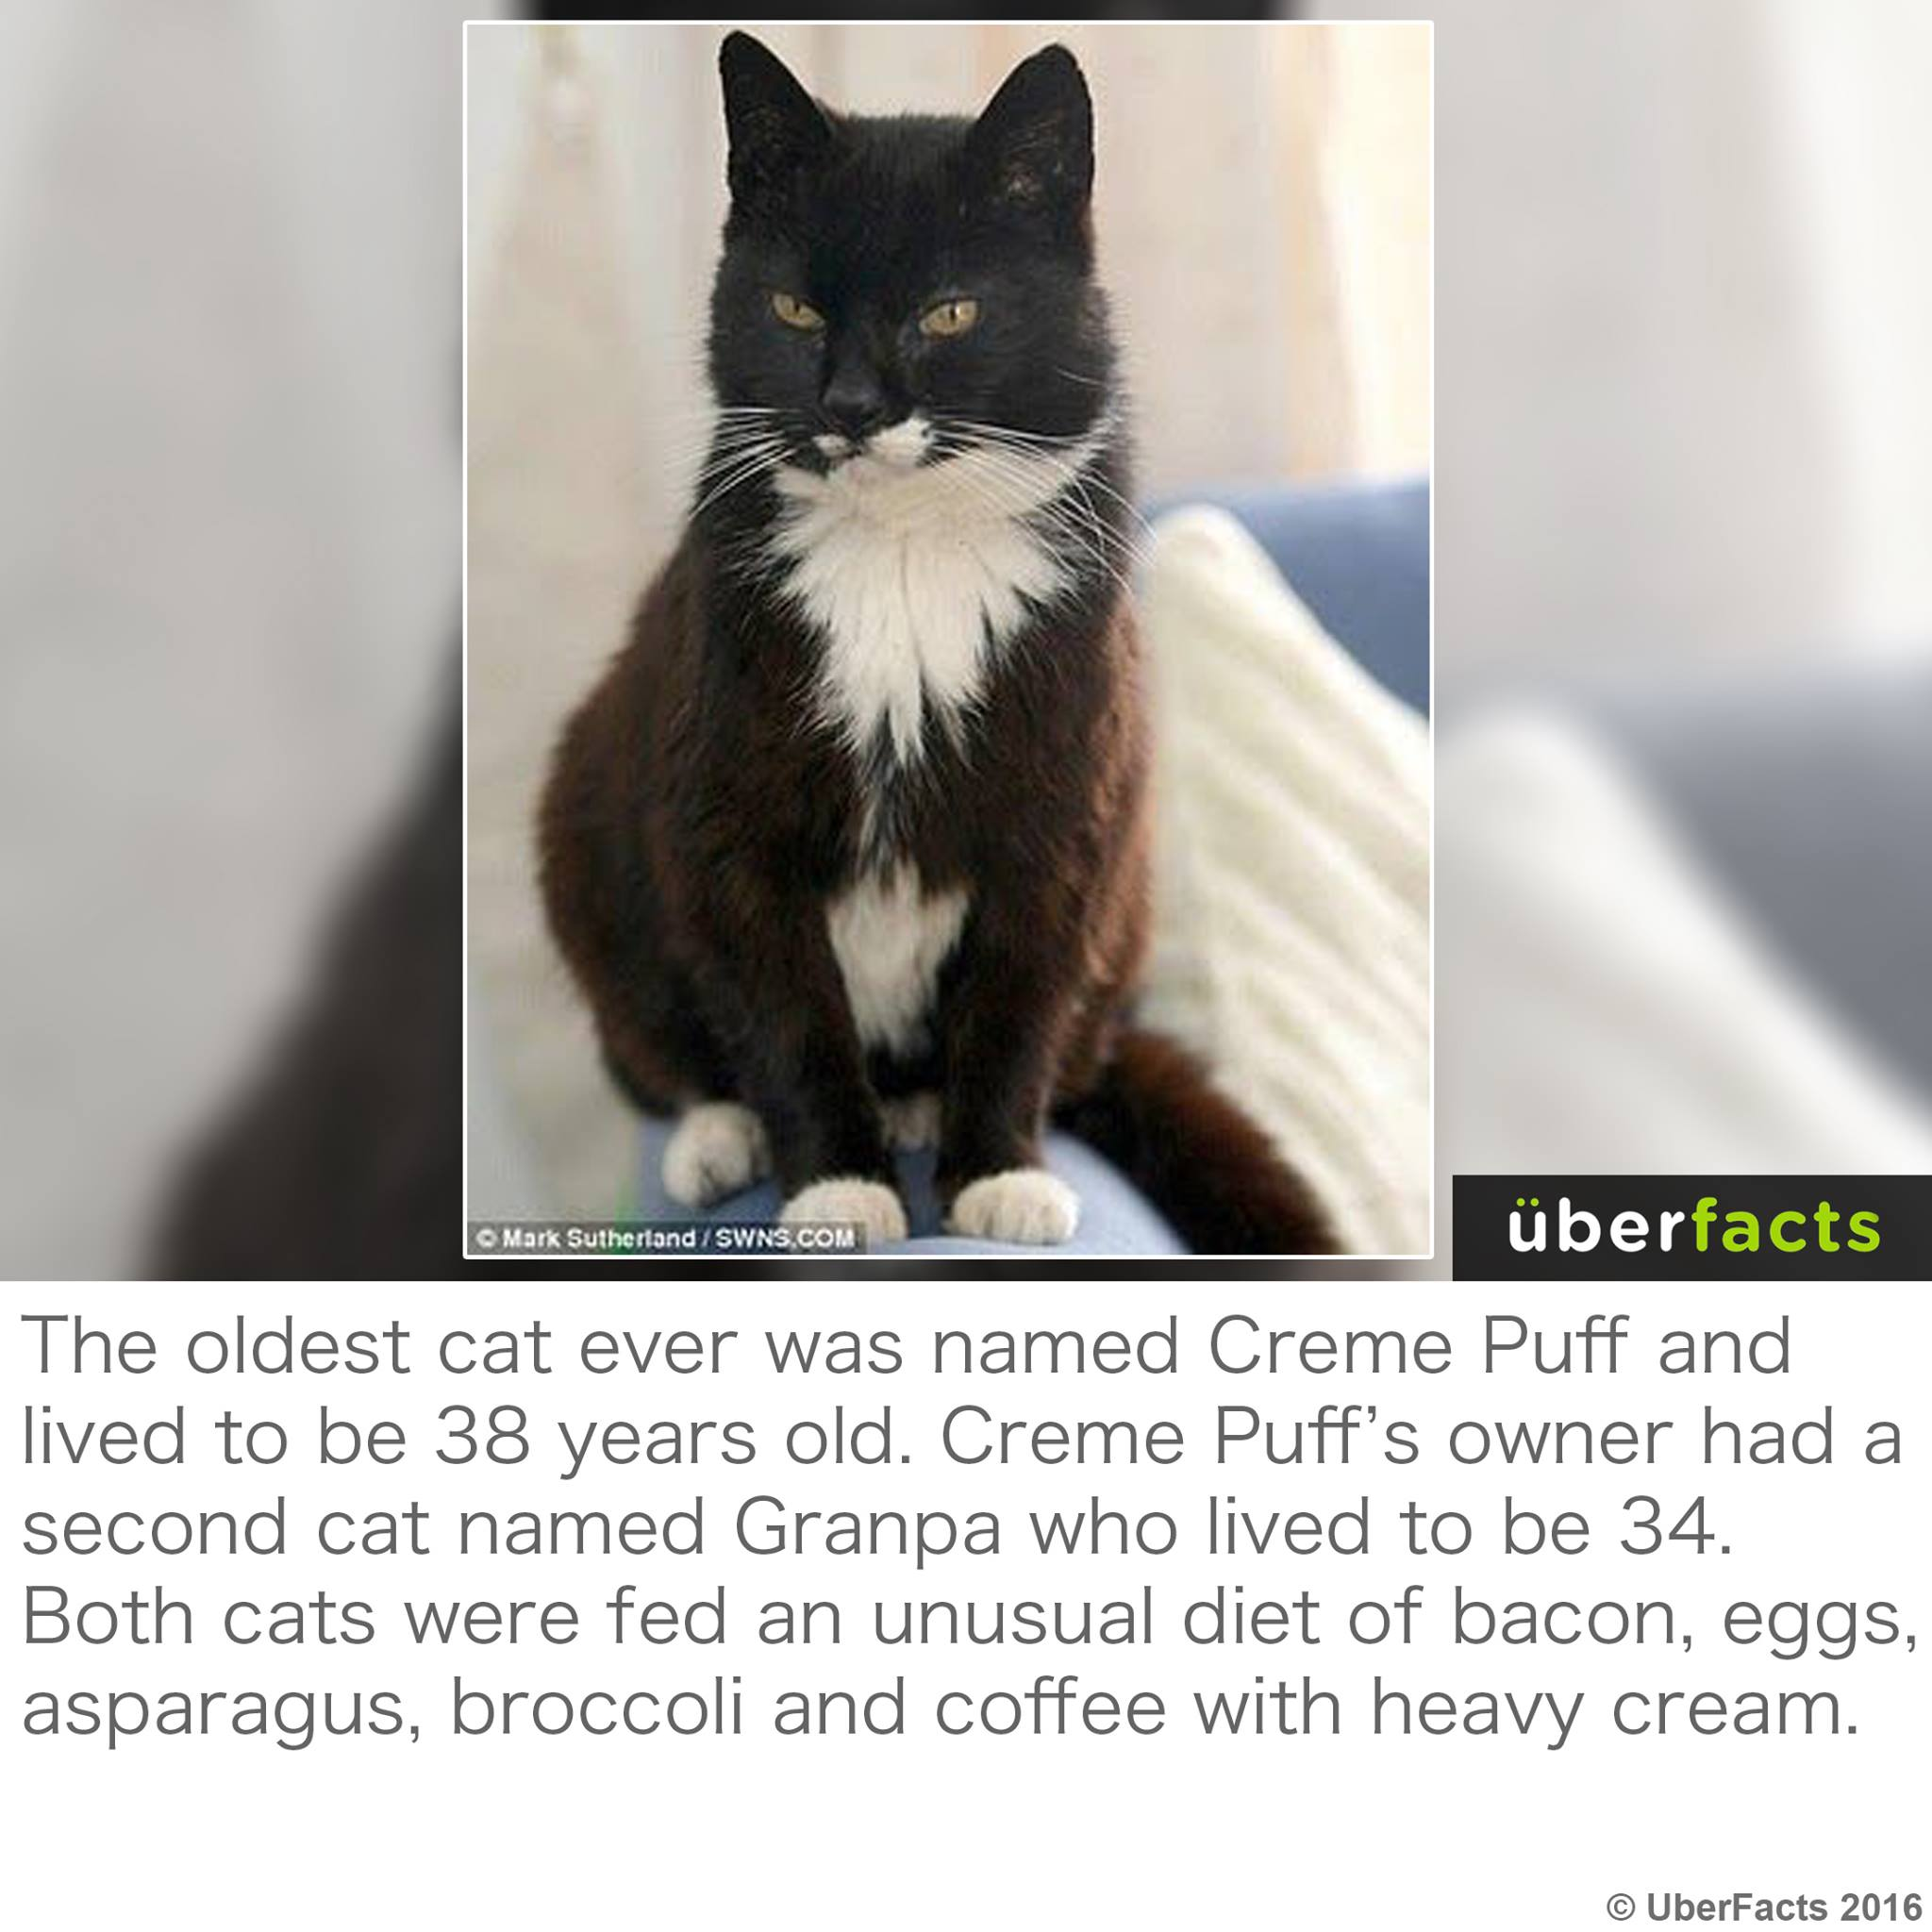 the oldest cat ever was named creme puff and lived to be 38 years old, cats were fed an unusual diet of bacon eggs asparagus broccoli and coffee with heavy cream